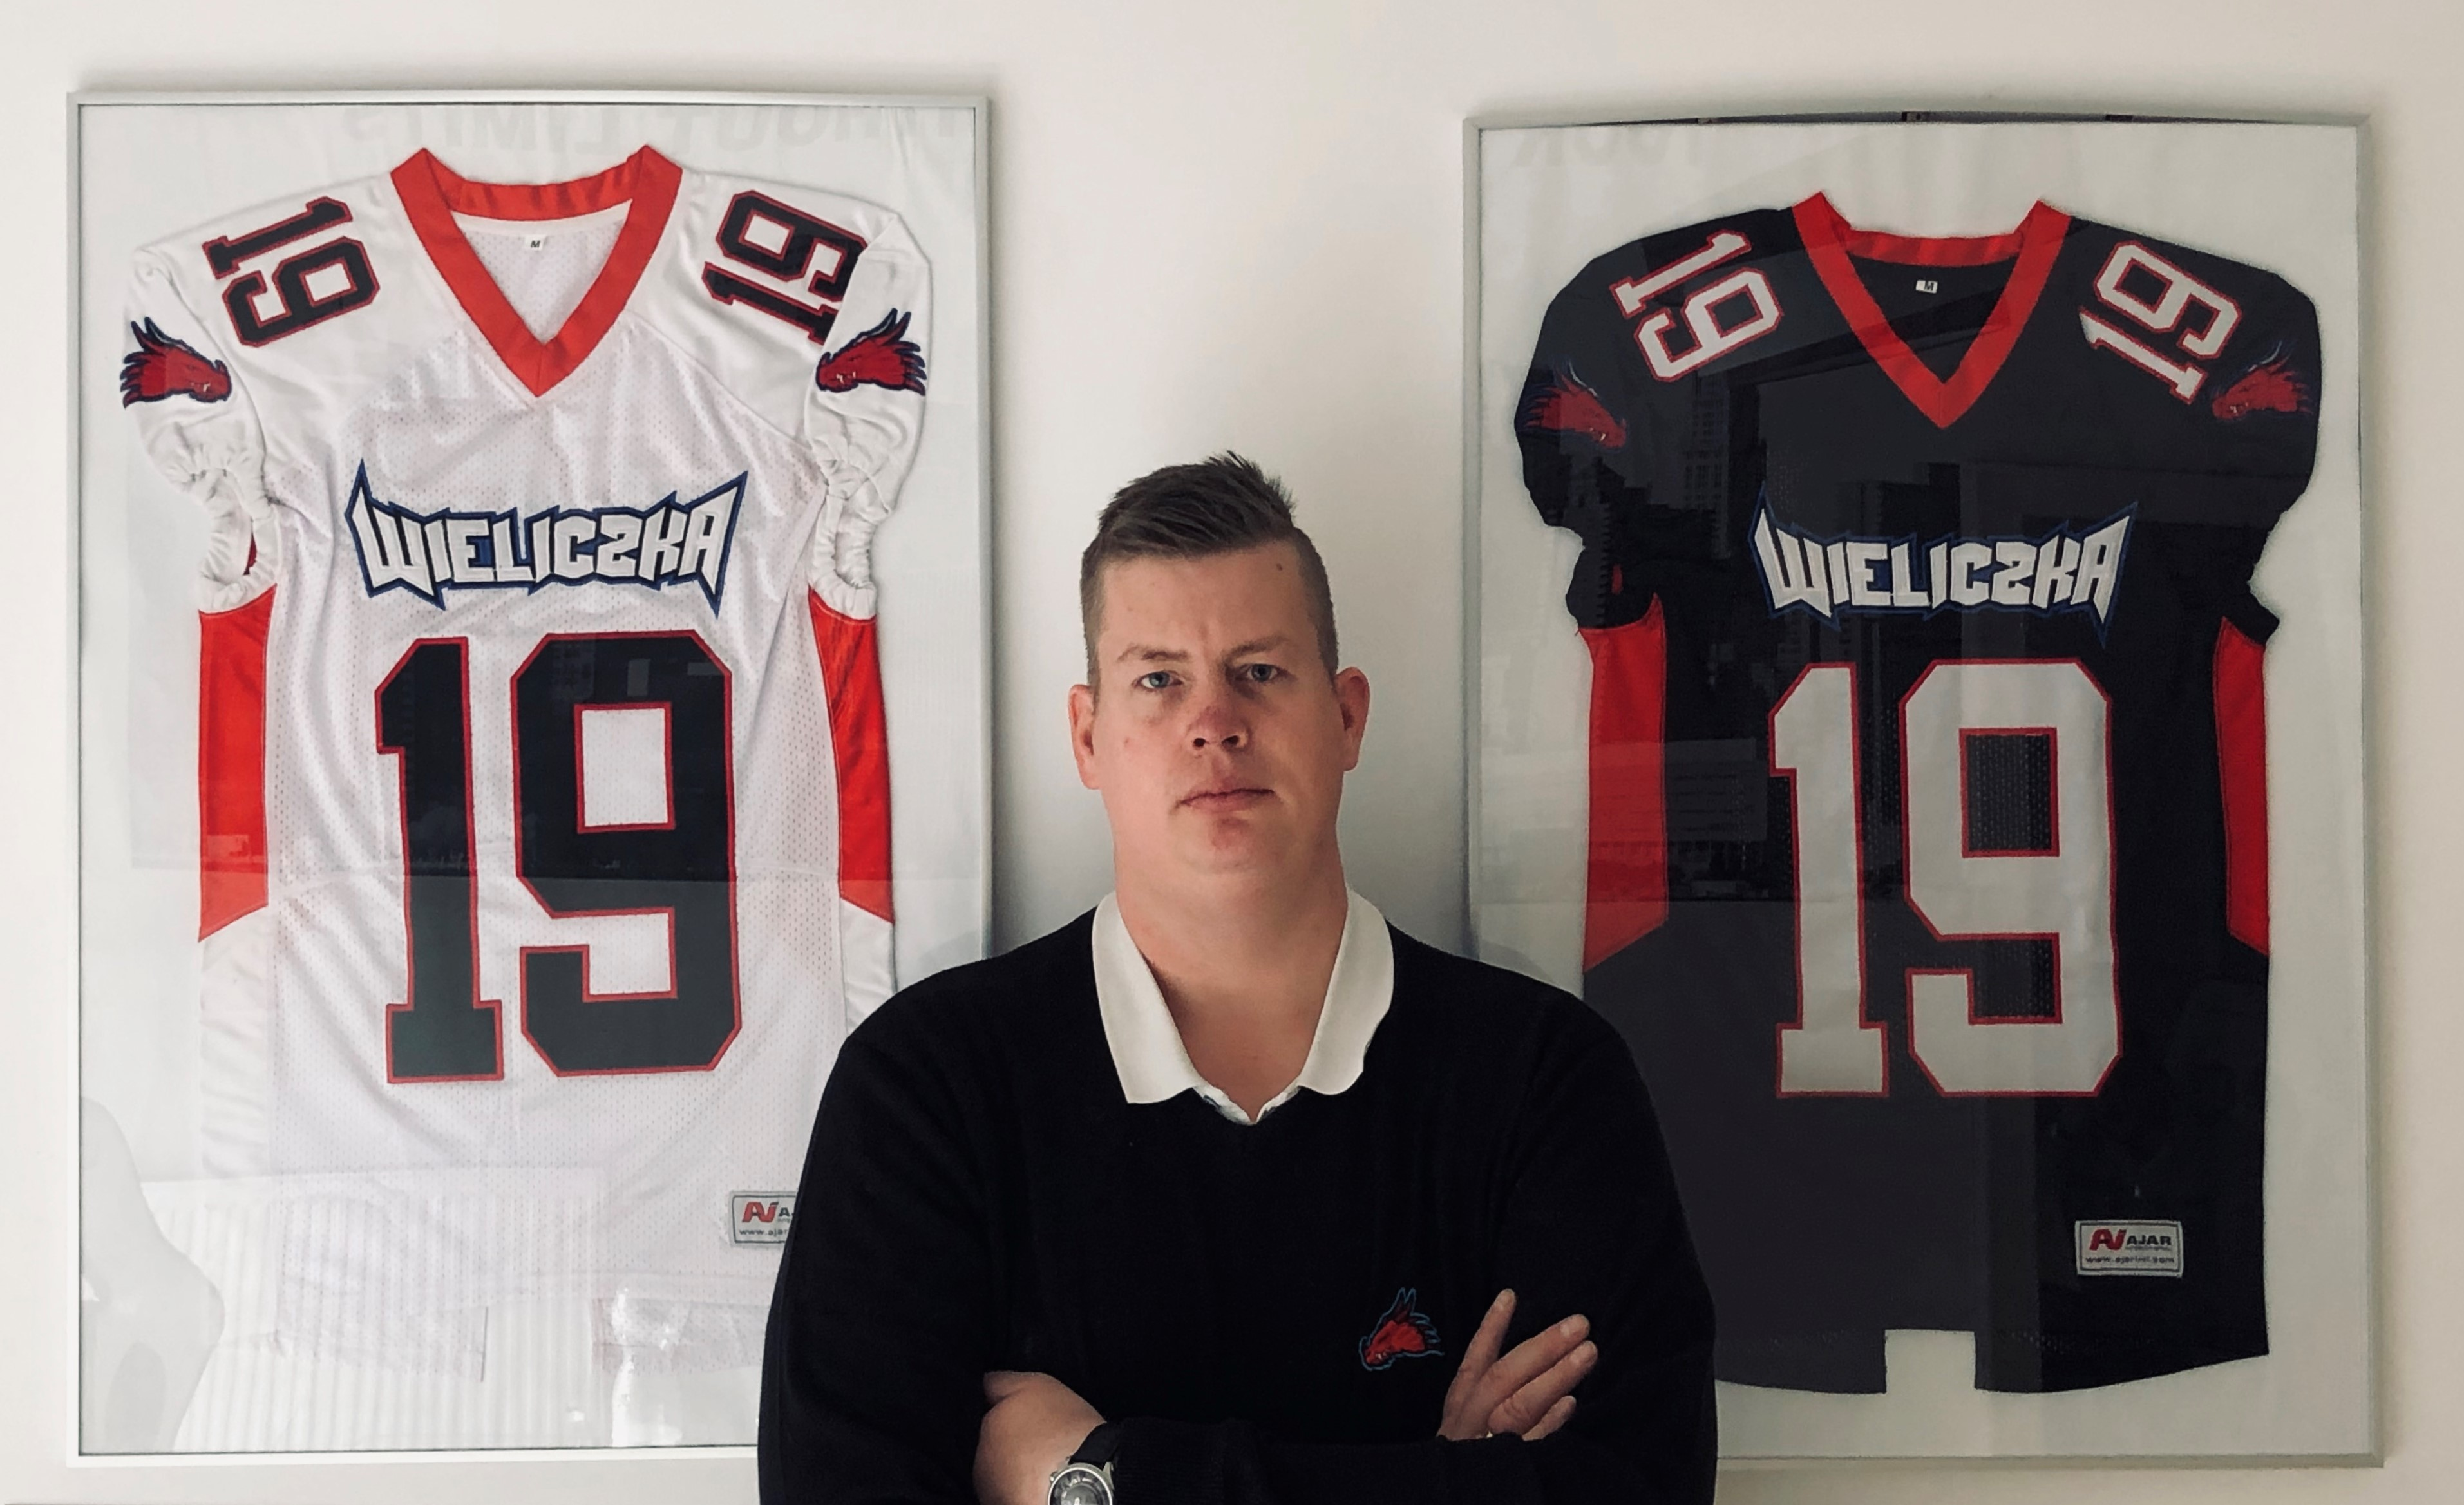 Rolf Helers: Our team would be a great asset to American football in Poland